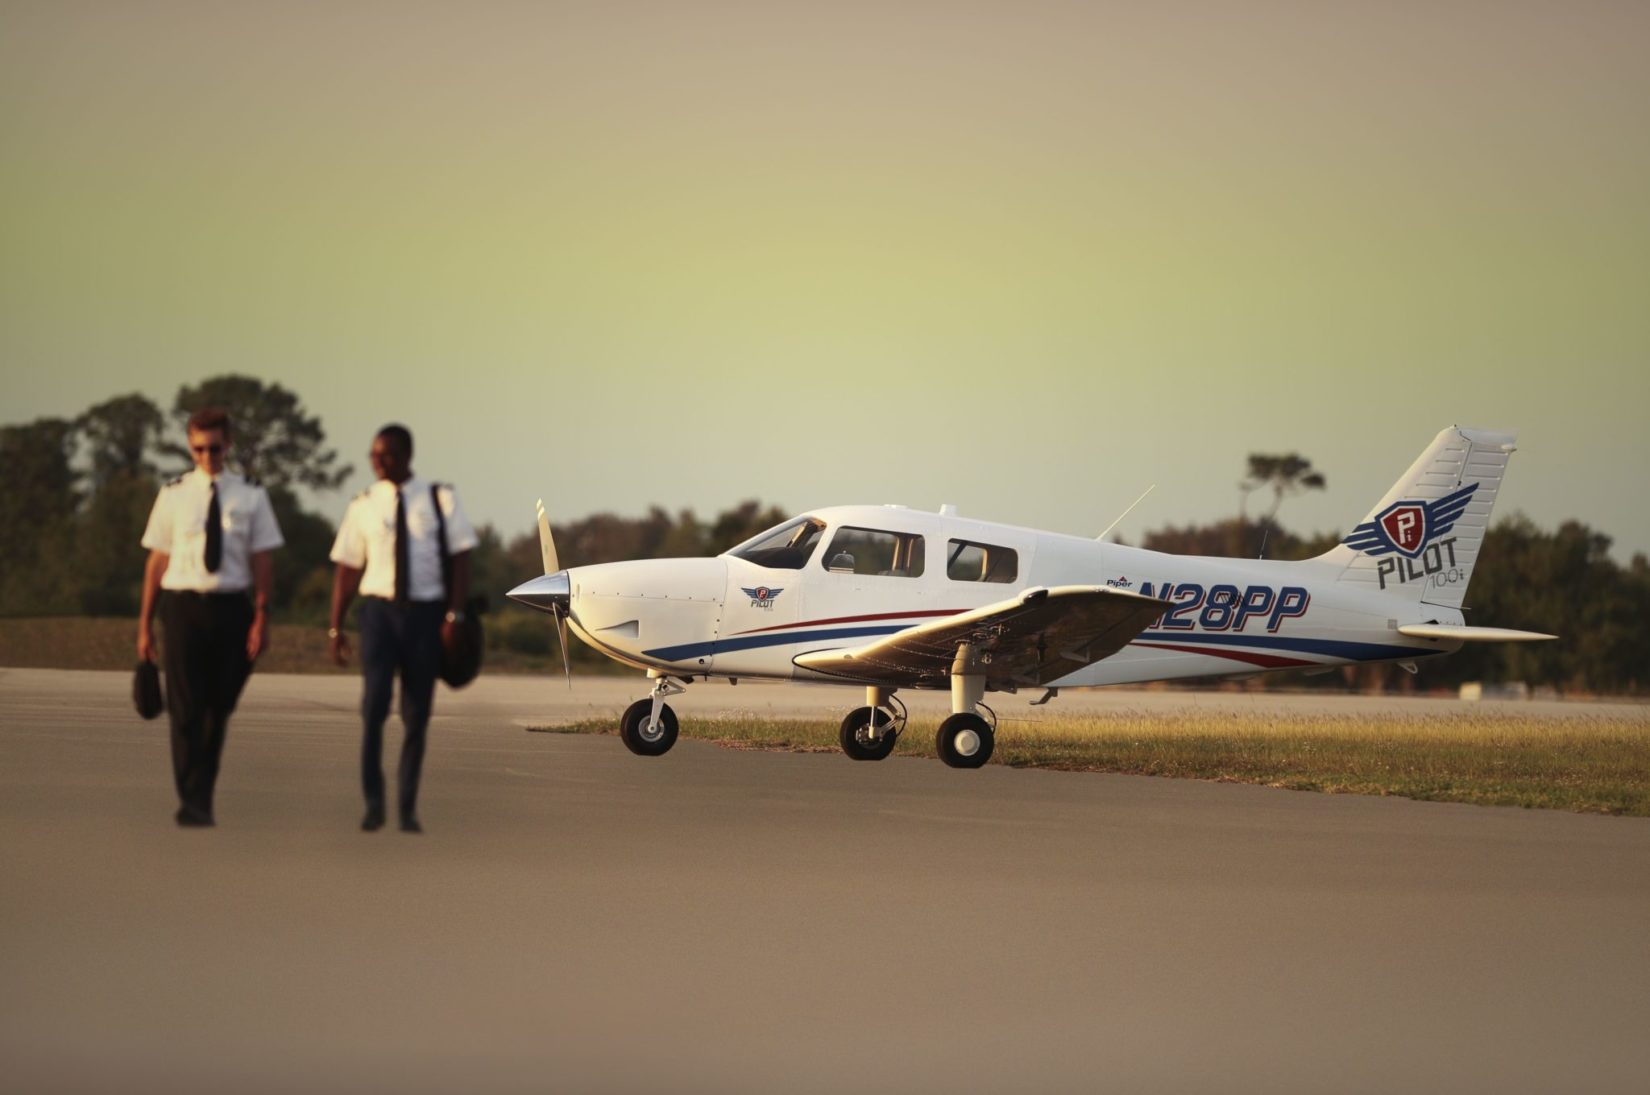 Two pilots walking on the runway next to the Piper Pilot 100i aircraft